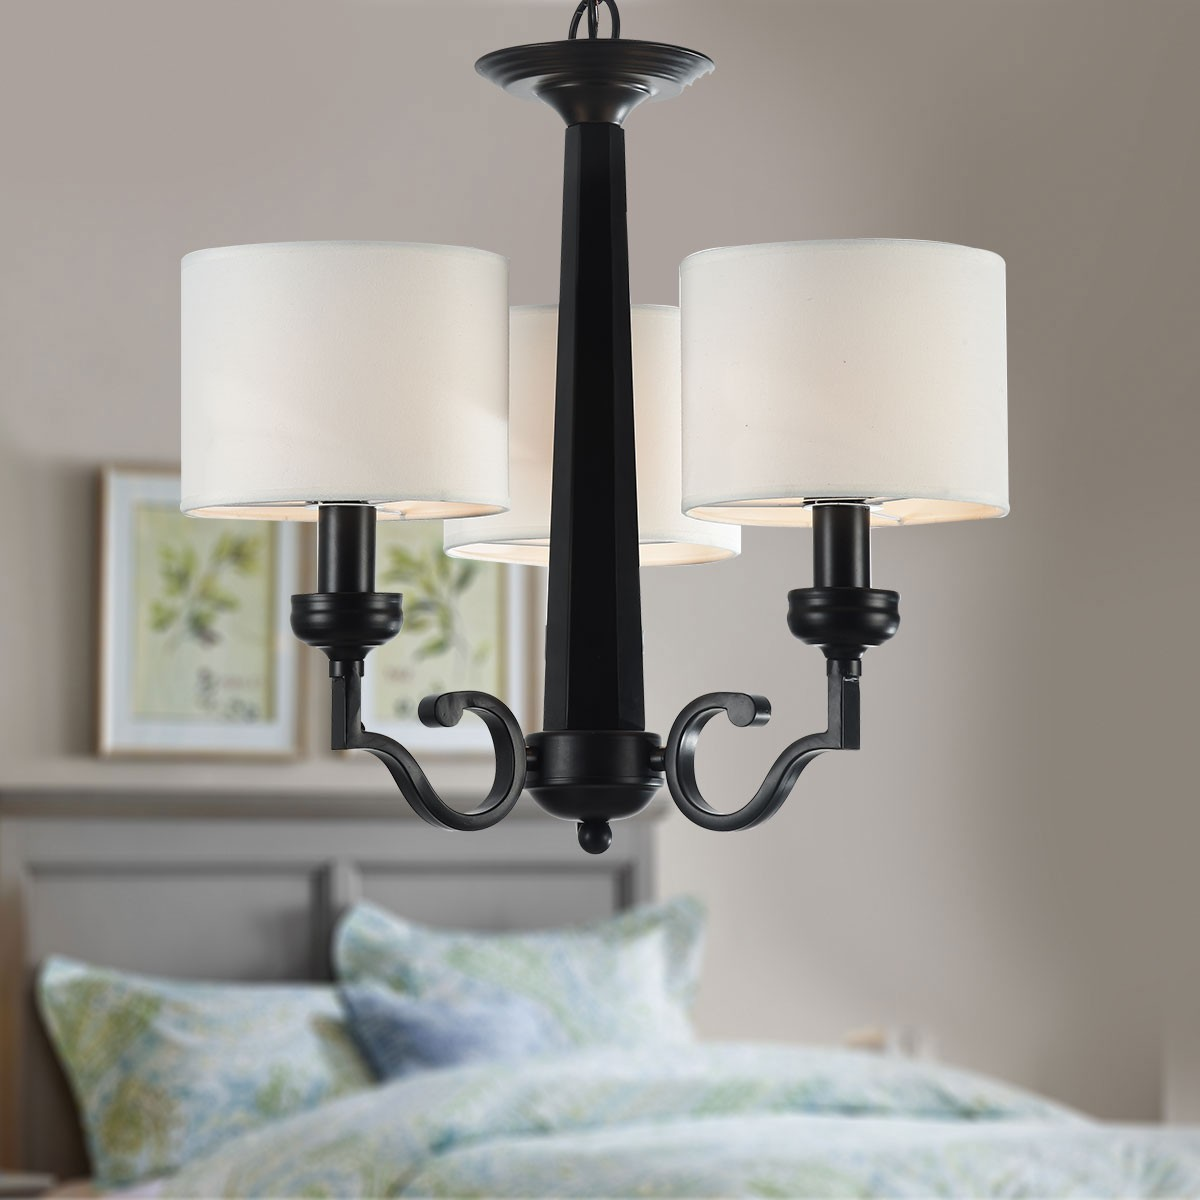 3 light black wrought iron chandelier with cloth shades dk 2017 3 3 light black wrought iron chandelier with cloth shades dk 2017 3 aloadofball Images